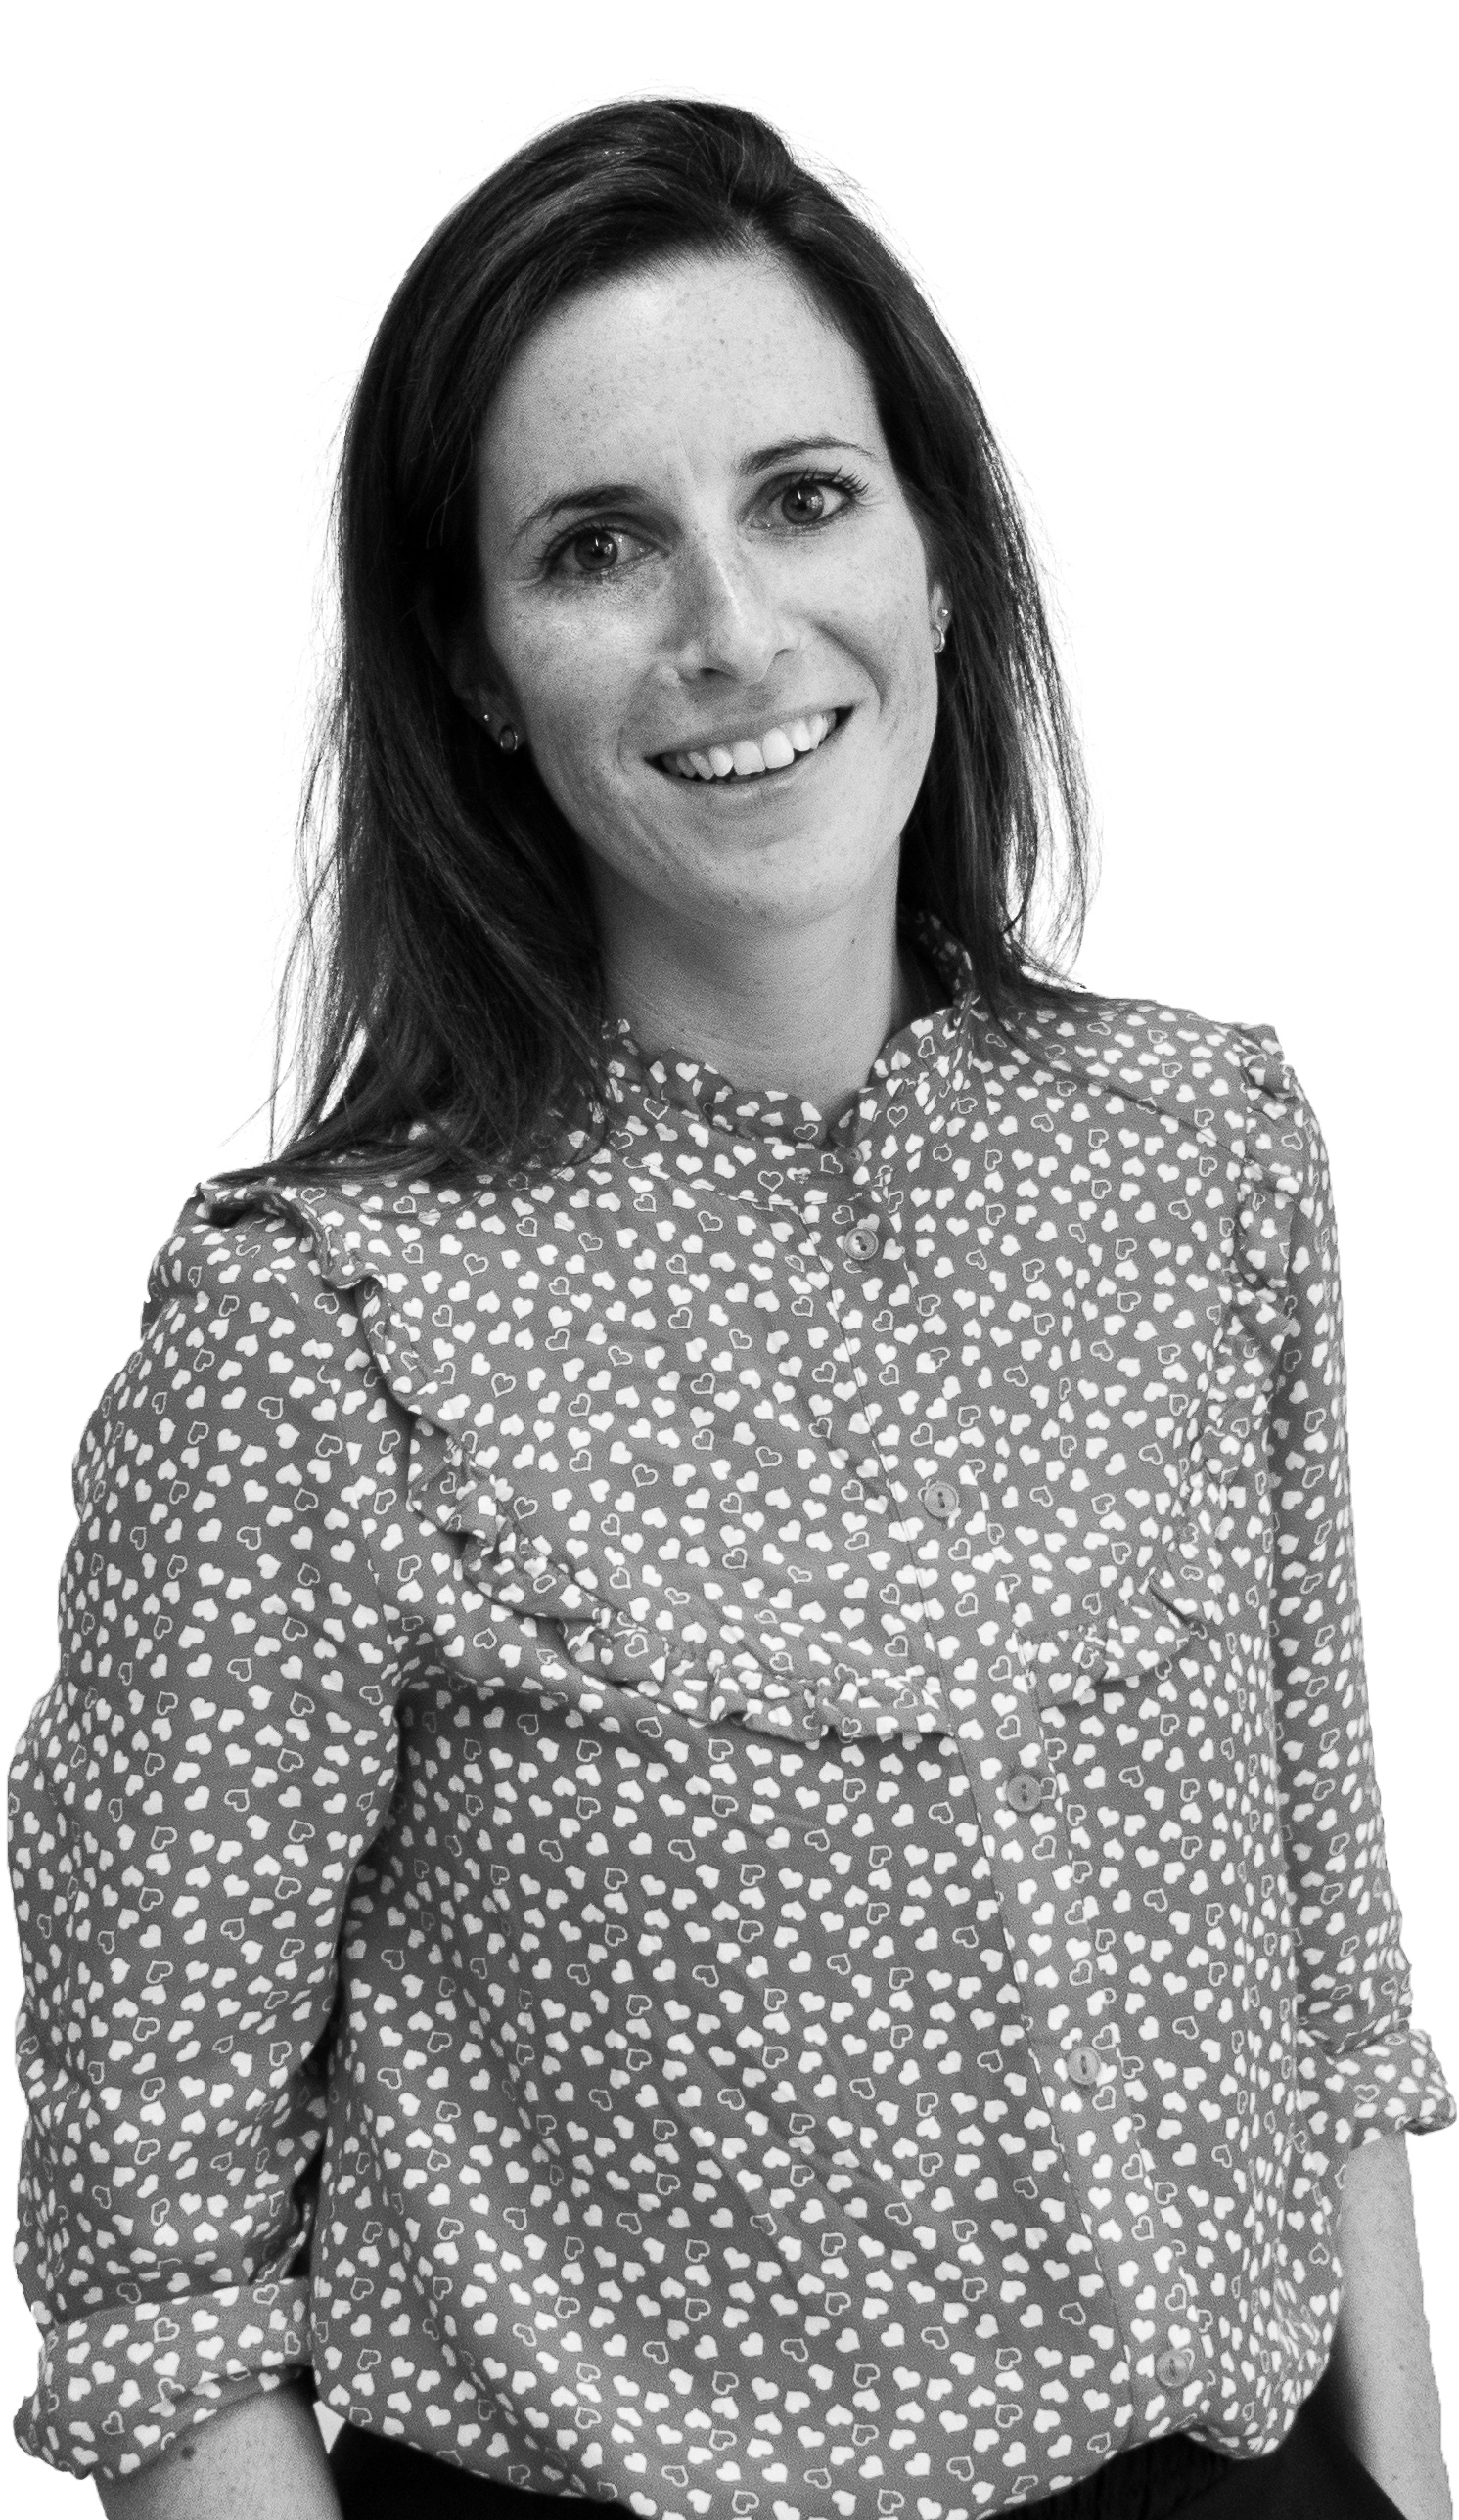 - OLIVIA MENKOFF&E DesignerOlivia works closely with Lauren to design and commission bespoke items for luxury residential projects. Her keen eye for detail and ability to identify and procure truly unique items helps assist the project teams in delivering one-of-a-kind schemes.